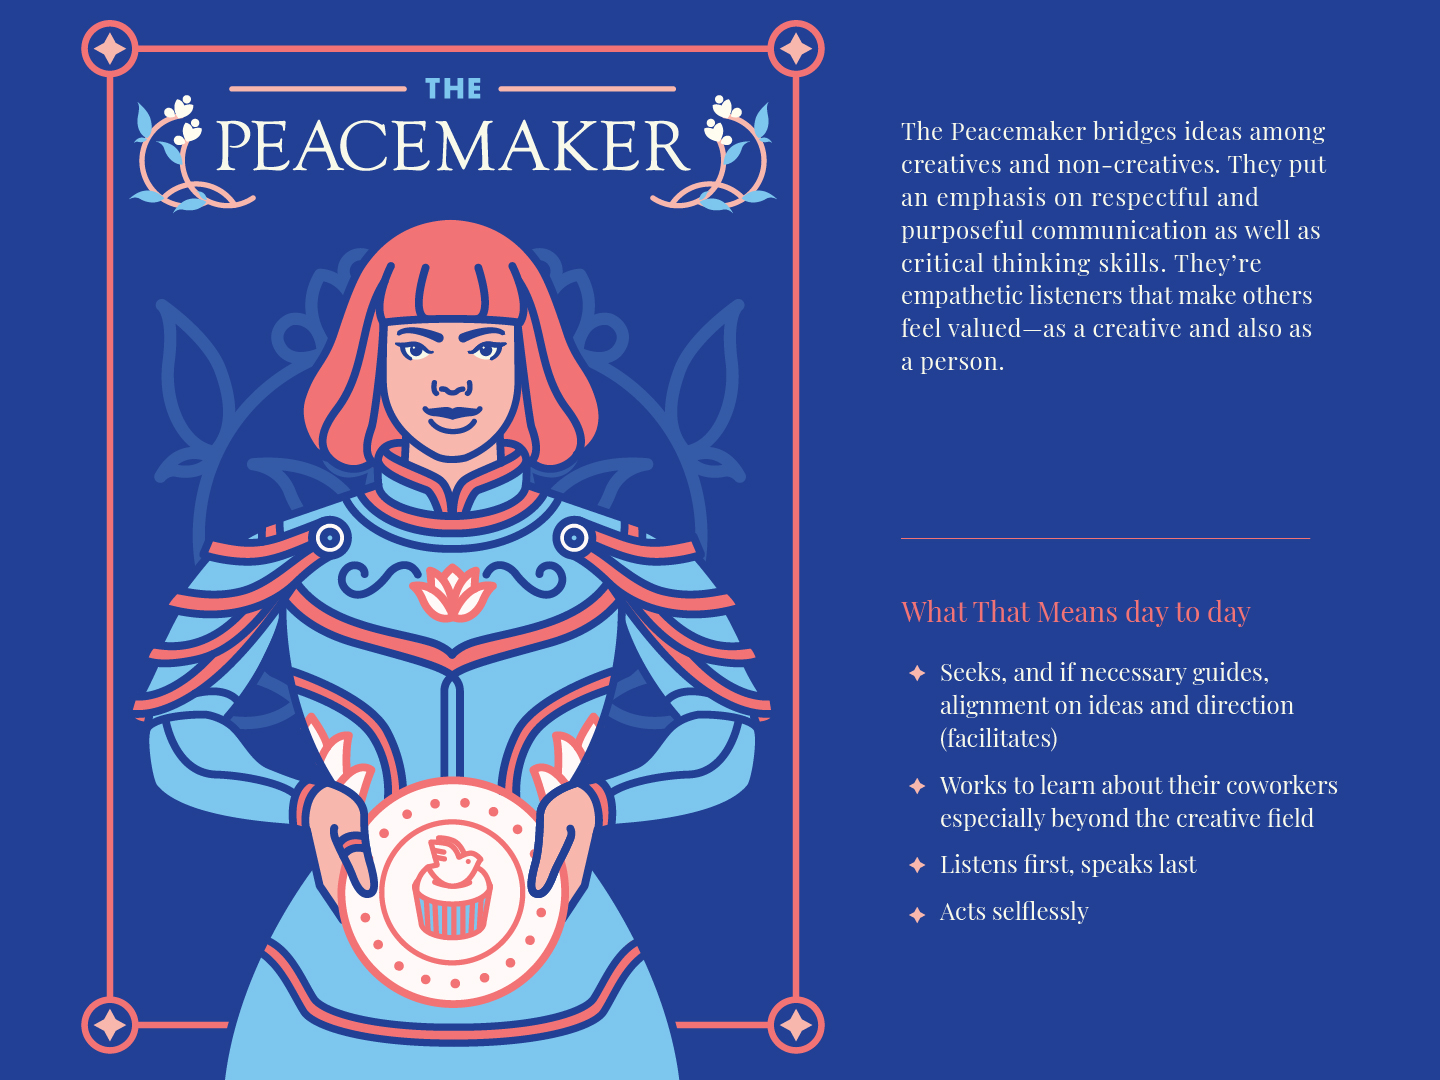 the_peacemaker_details.jpg